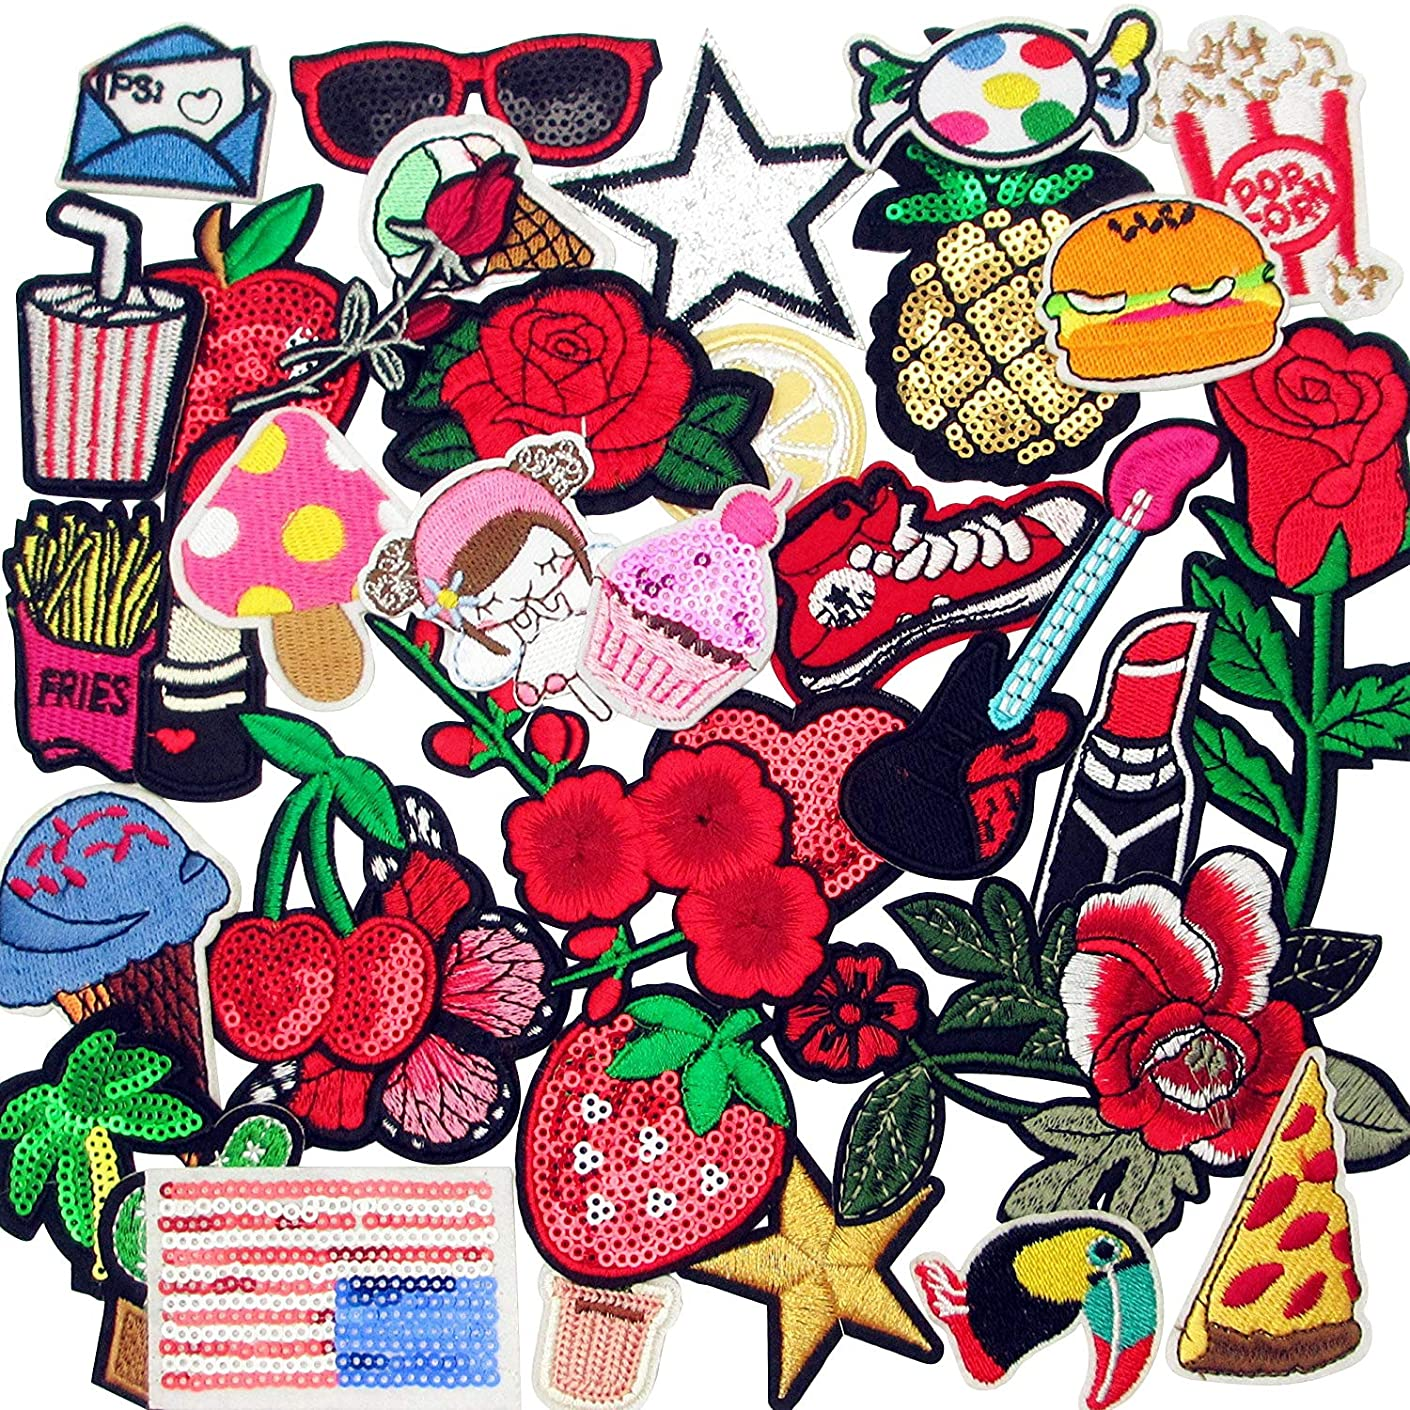 Dandan DIY 36pcs Random Assorted Styles Kid Embroidered Patch Sew On/Iron On Patch Applique Clothes Dress Plant Hat Jeans Sewing Flowers Applique DIY Accessory